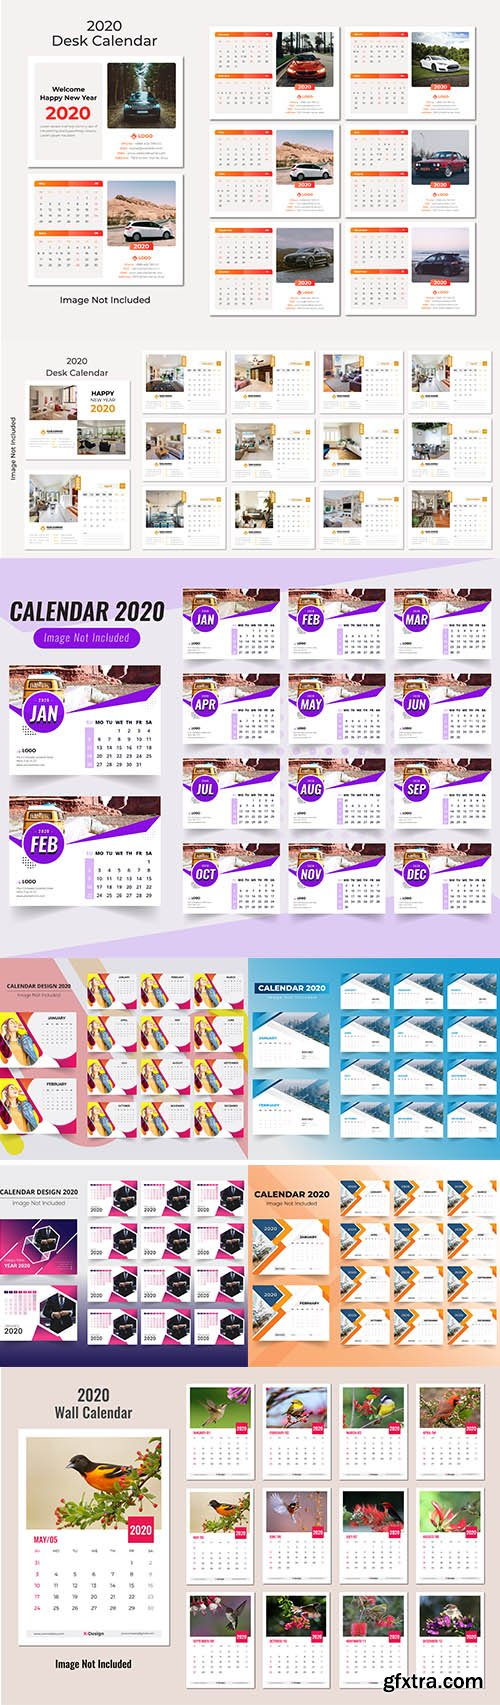 Desk and Wall Calendar 2020 Pack vol.1